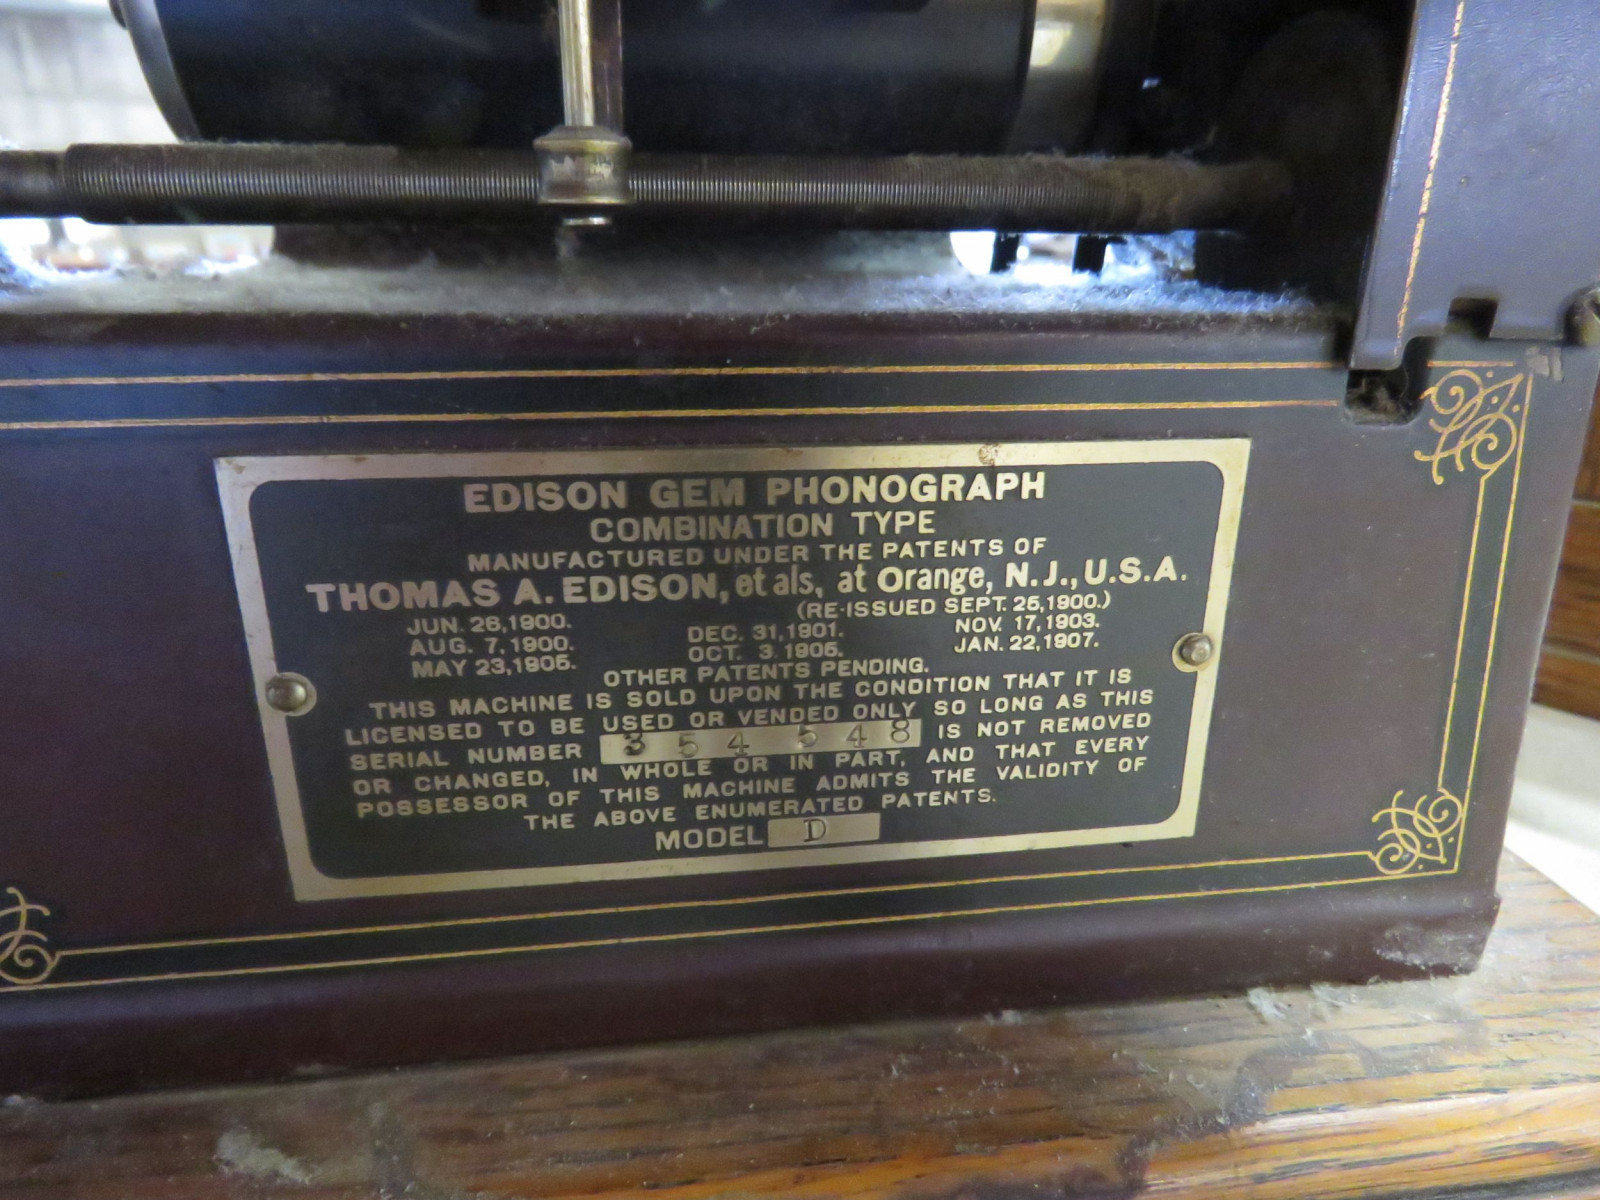 Vintage Edison Gem Combination Phonograph - Image 4